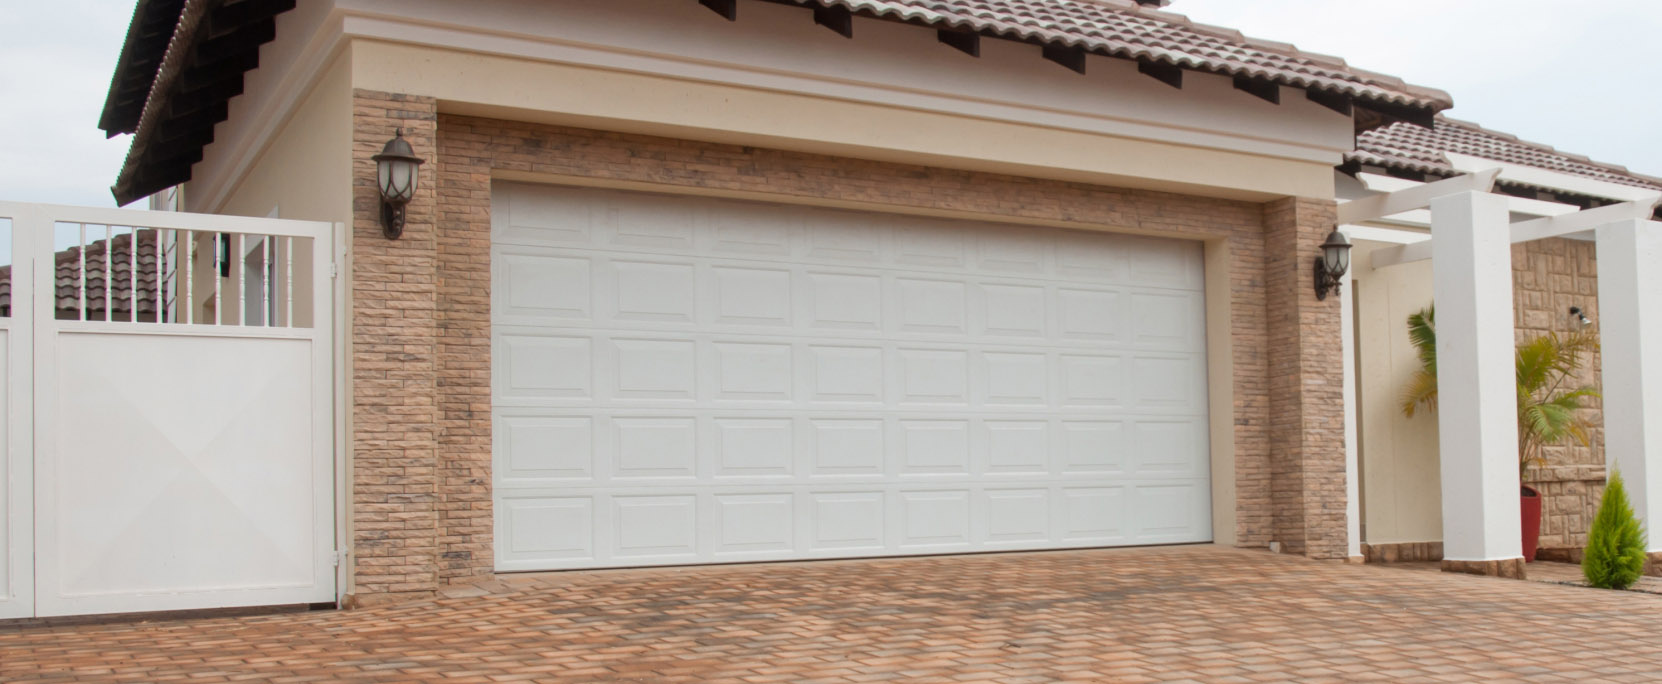 Reliable garage door repair glasgow garage door 2g rubansaba